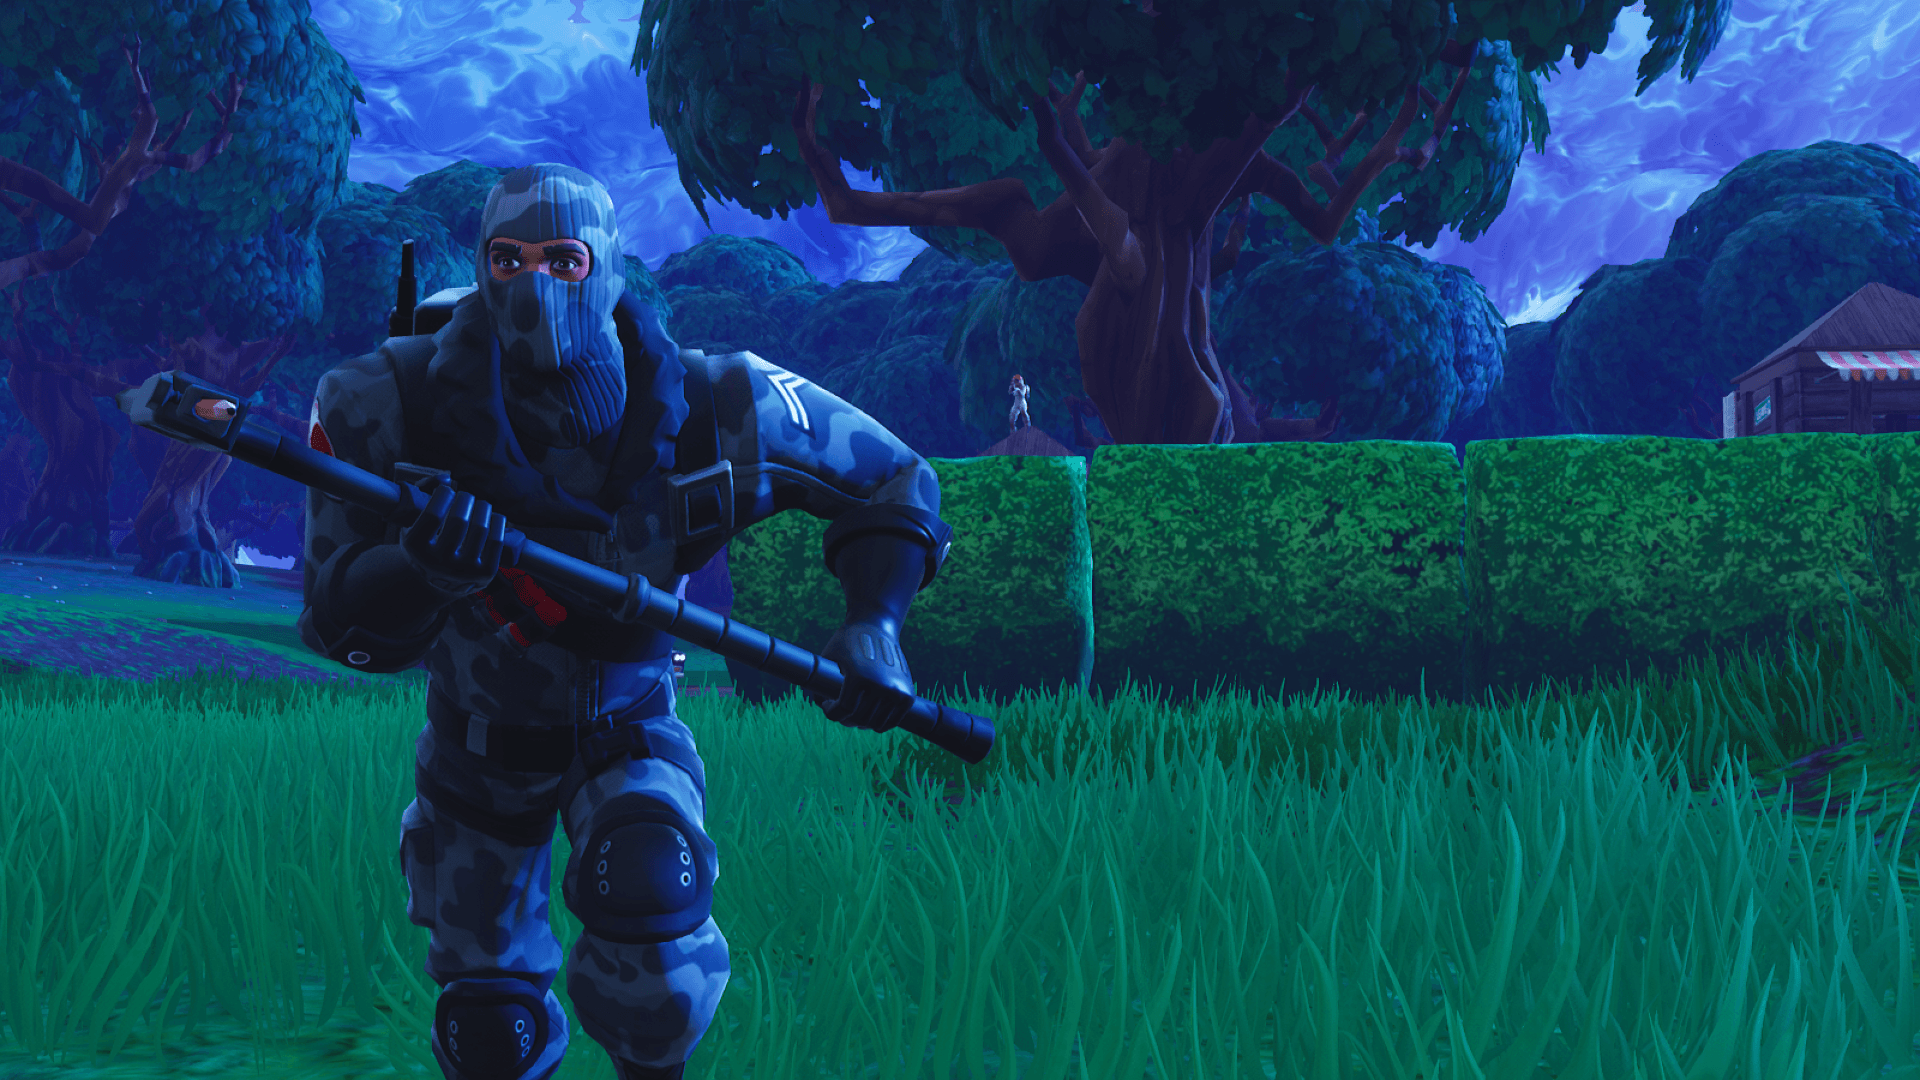 Cool Fortnite Battle Royale Wallpapers Top Free Cool